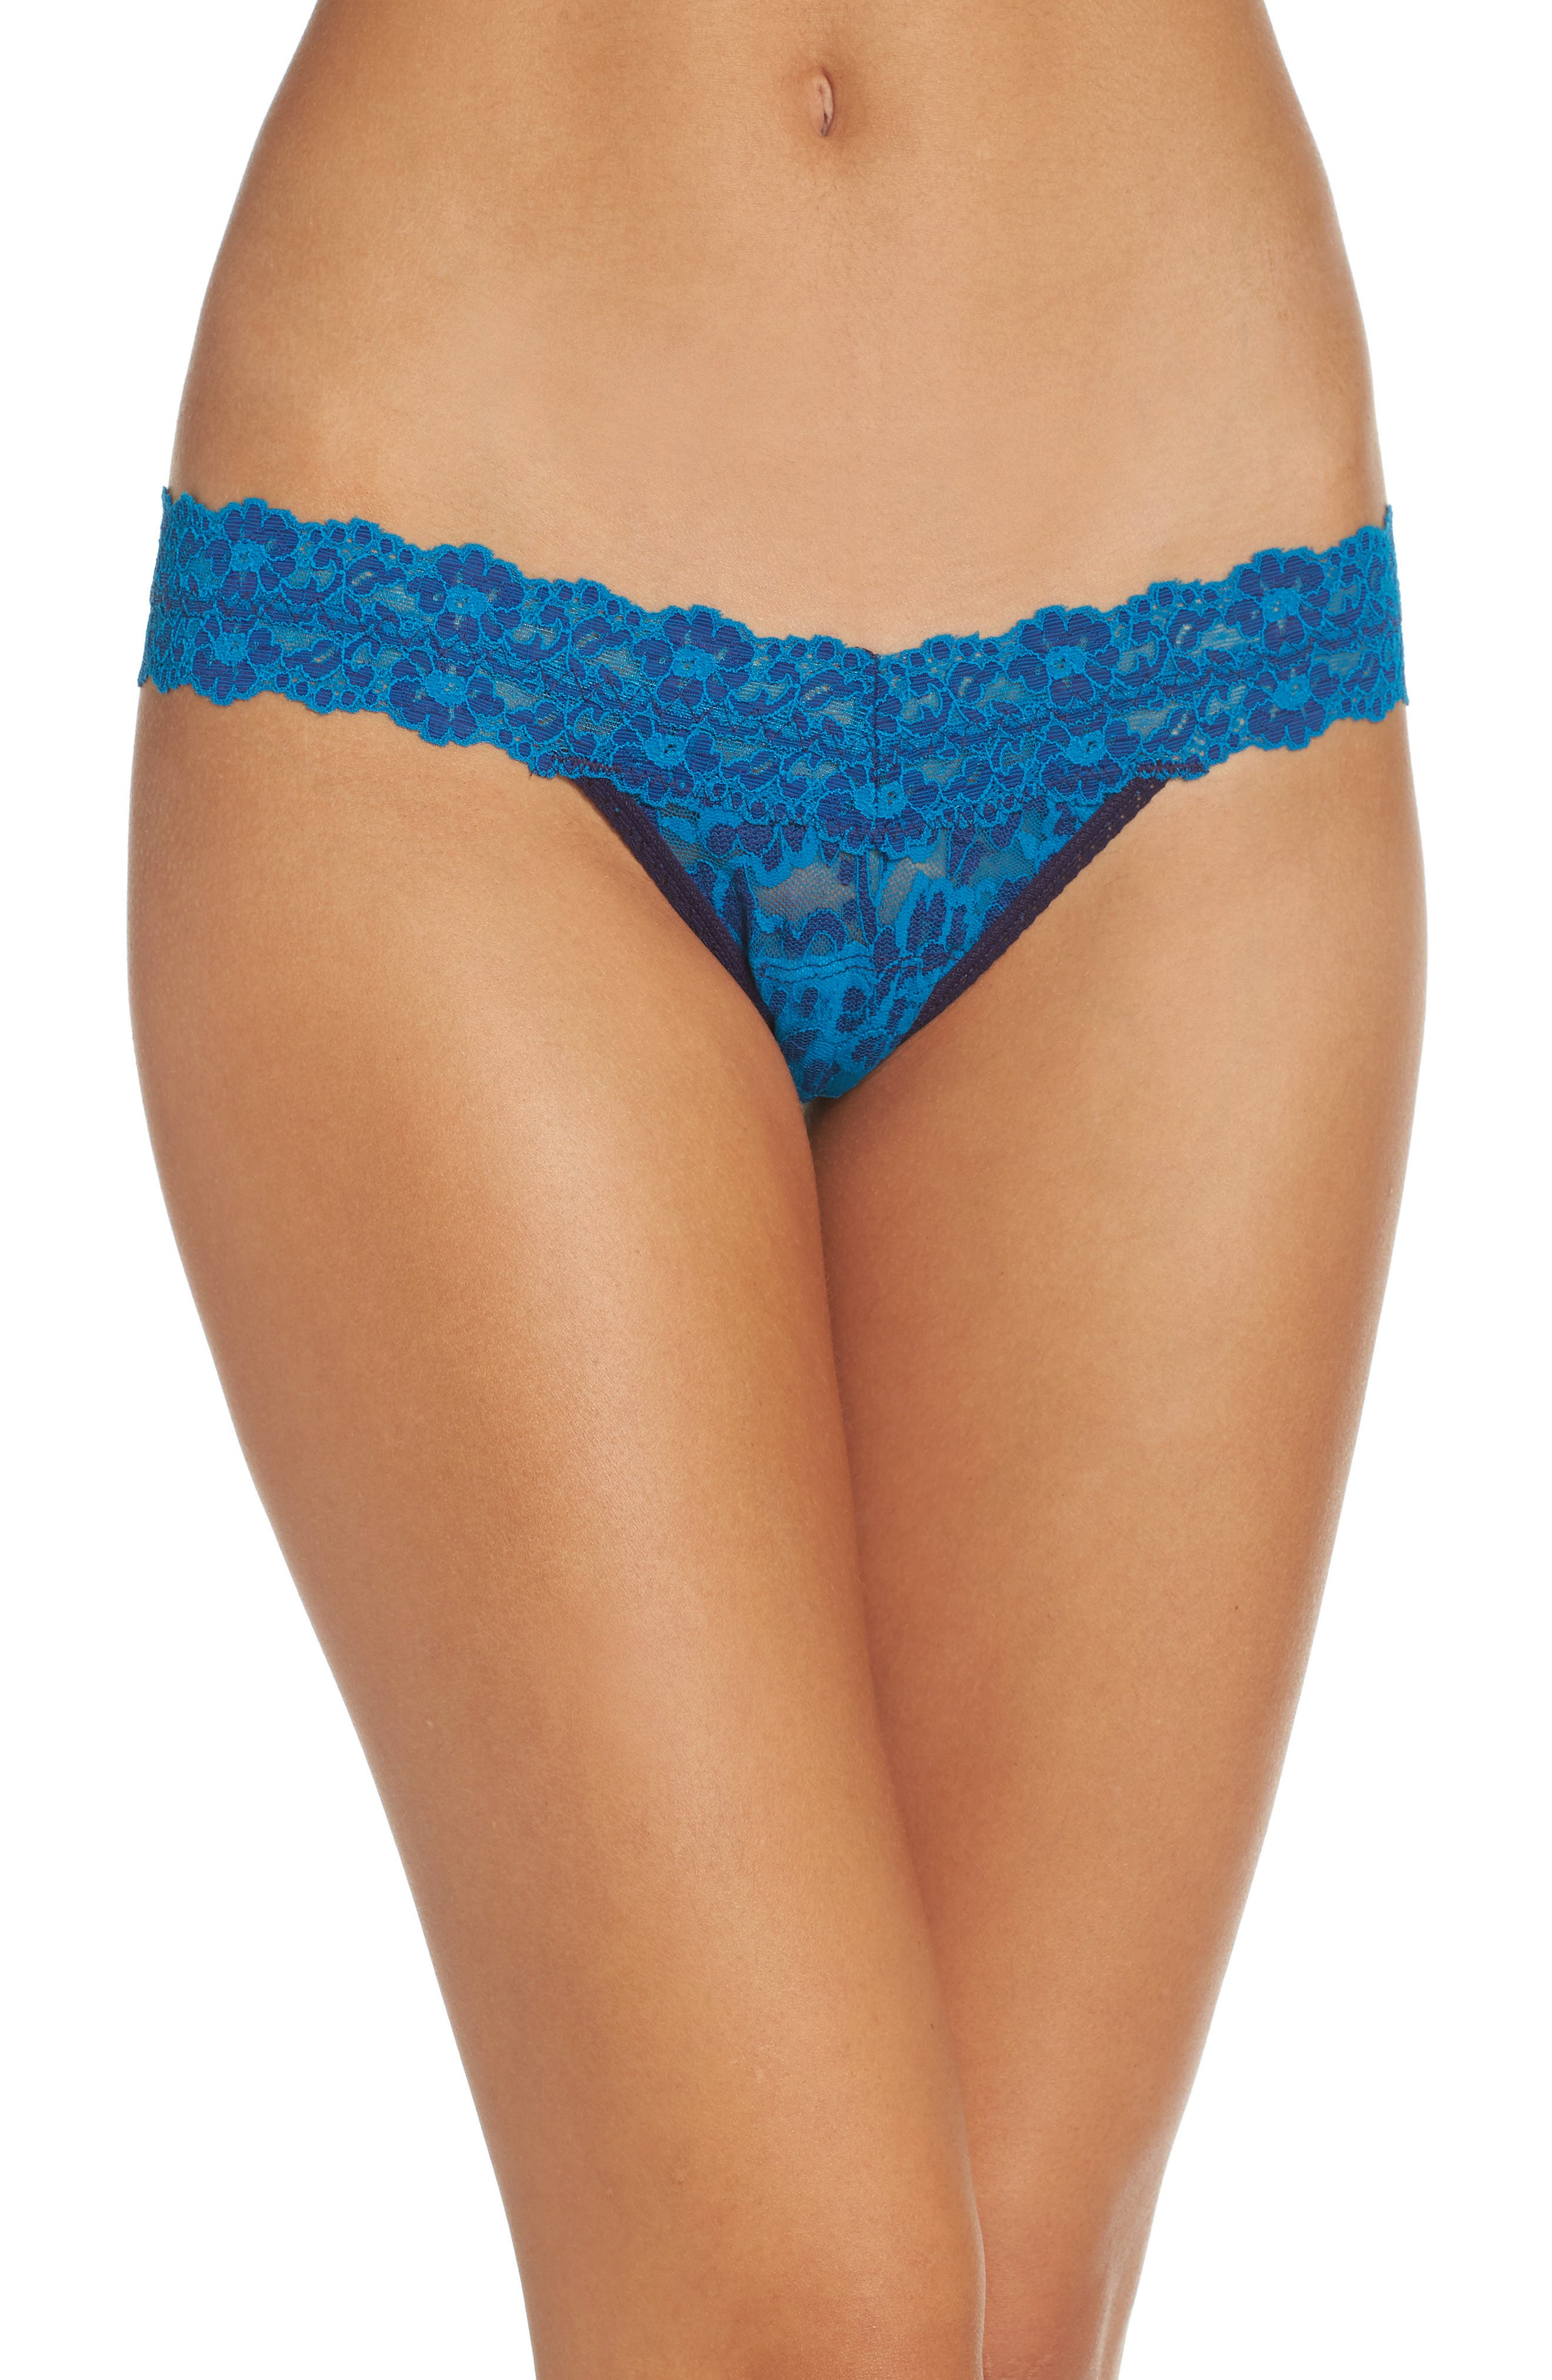 Alternate Image 1 Selected - Hanky Panky Cross Dyed Low Rise Thong